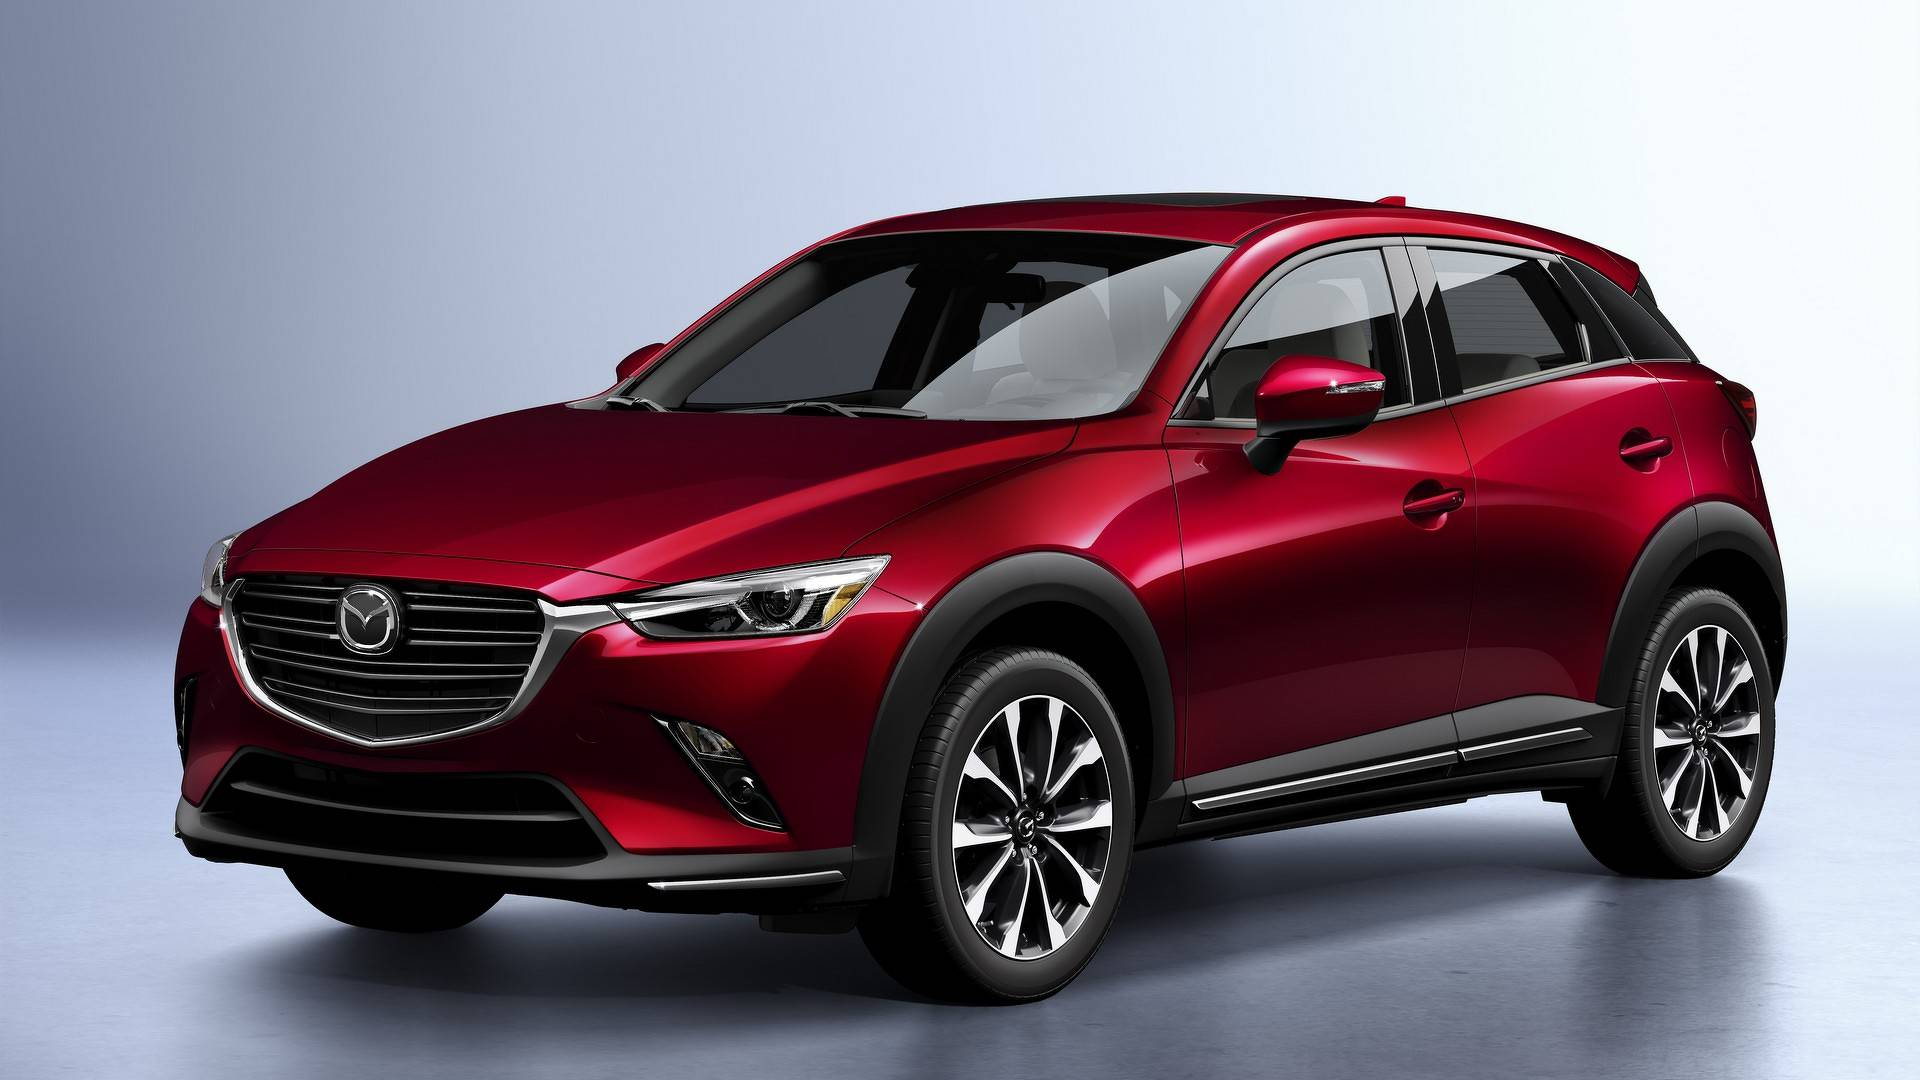 2020 Mazda Cx 3 Photos